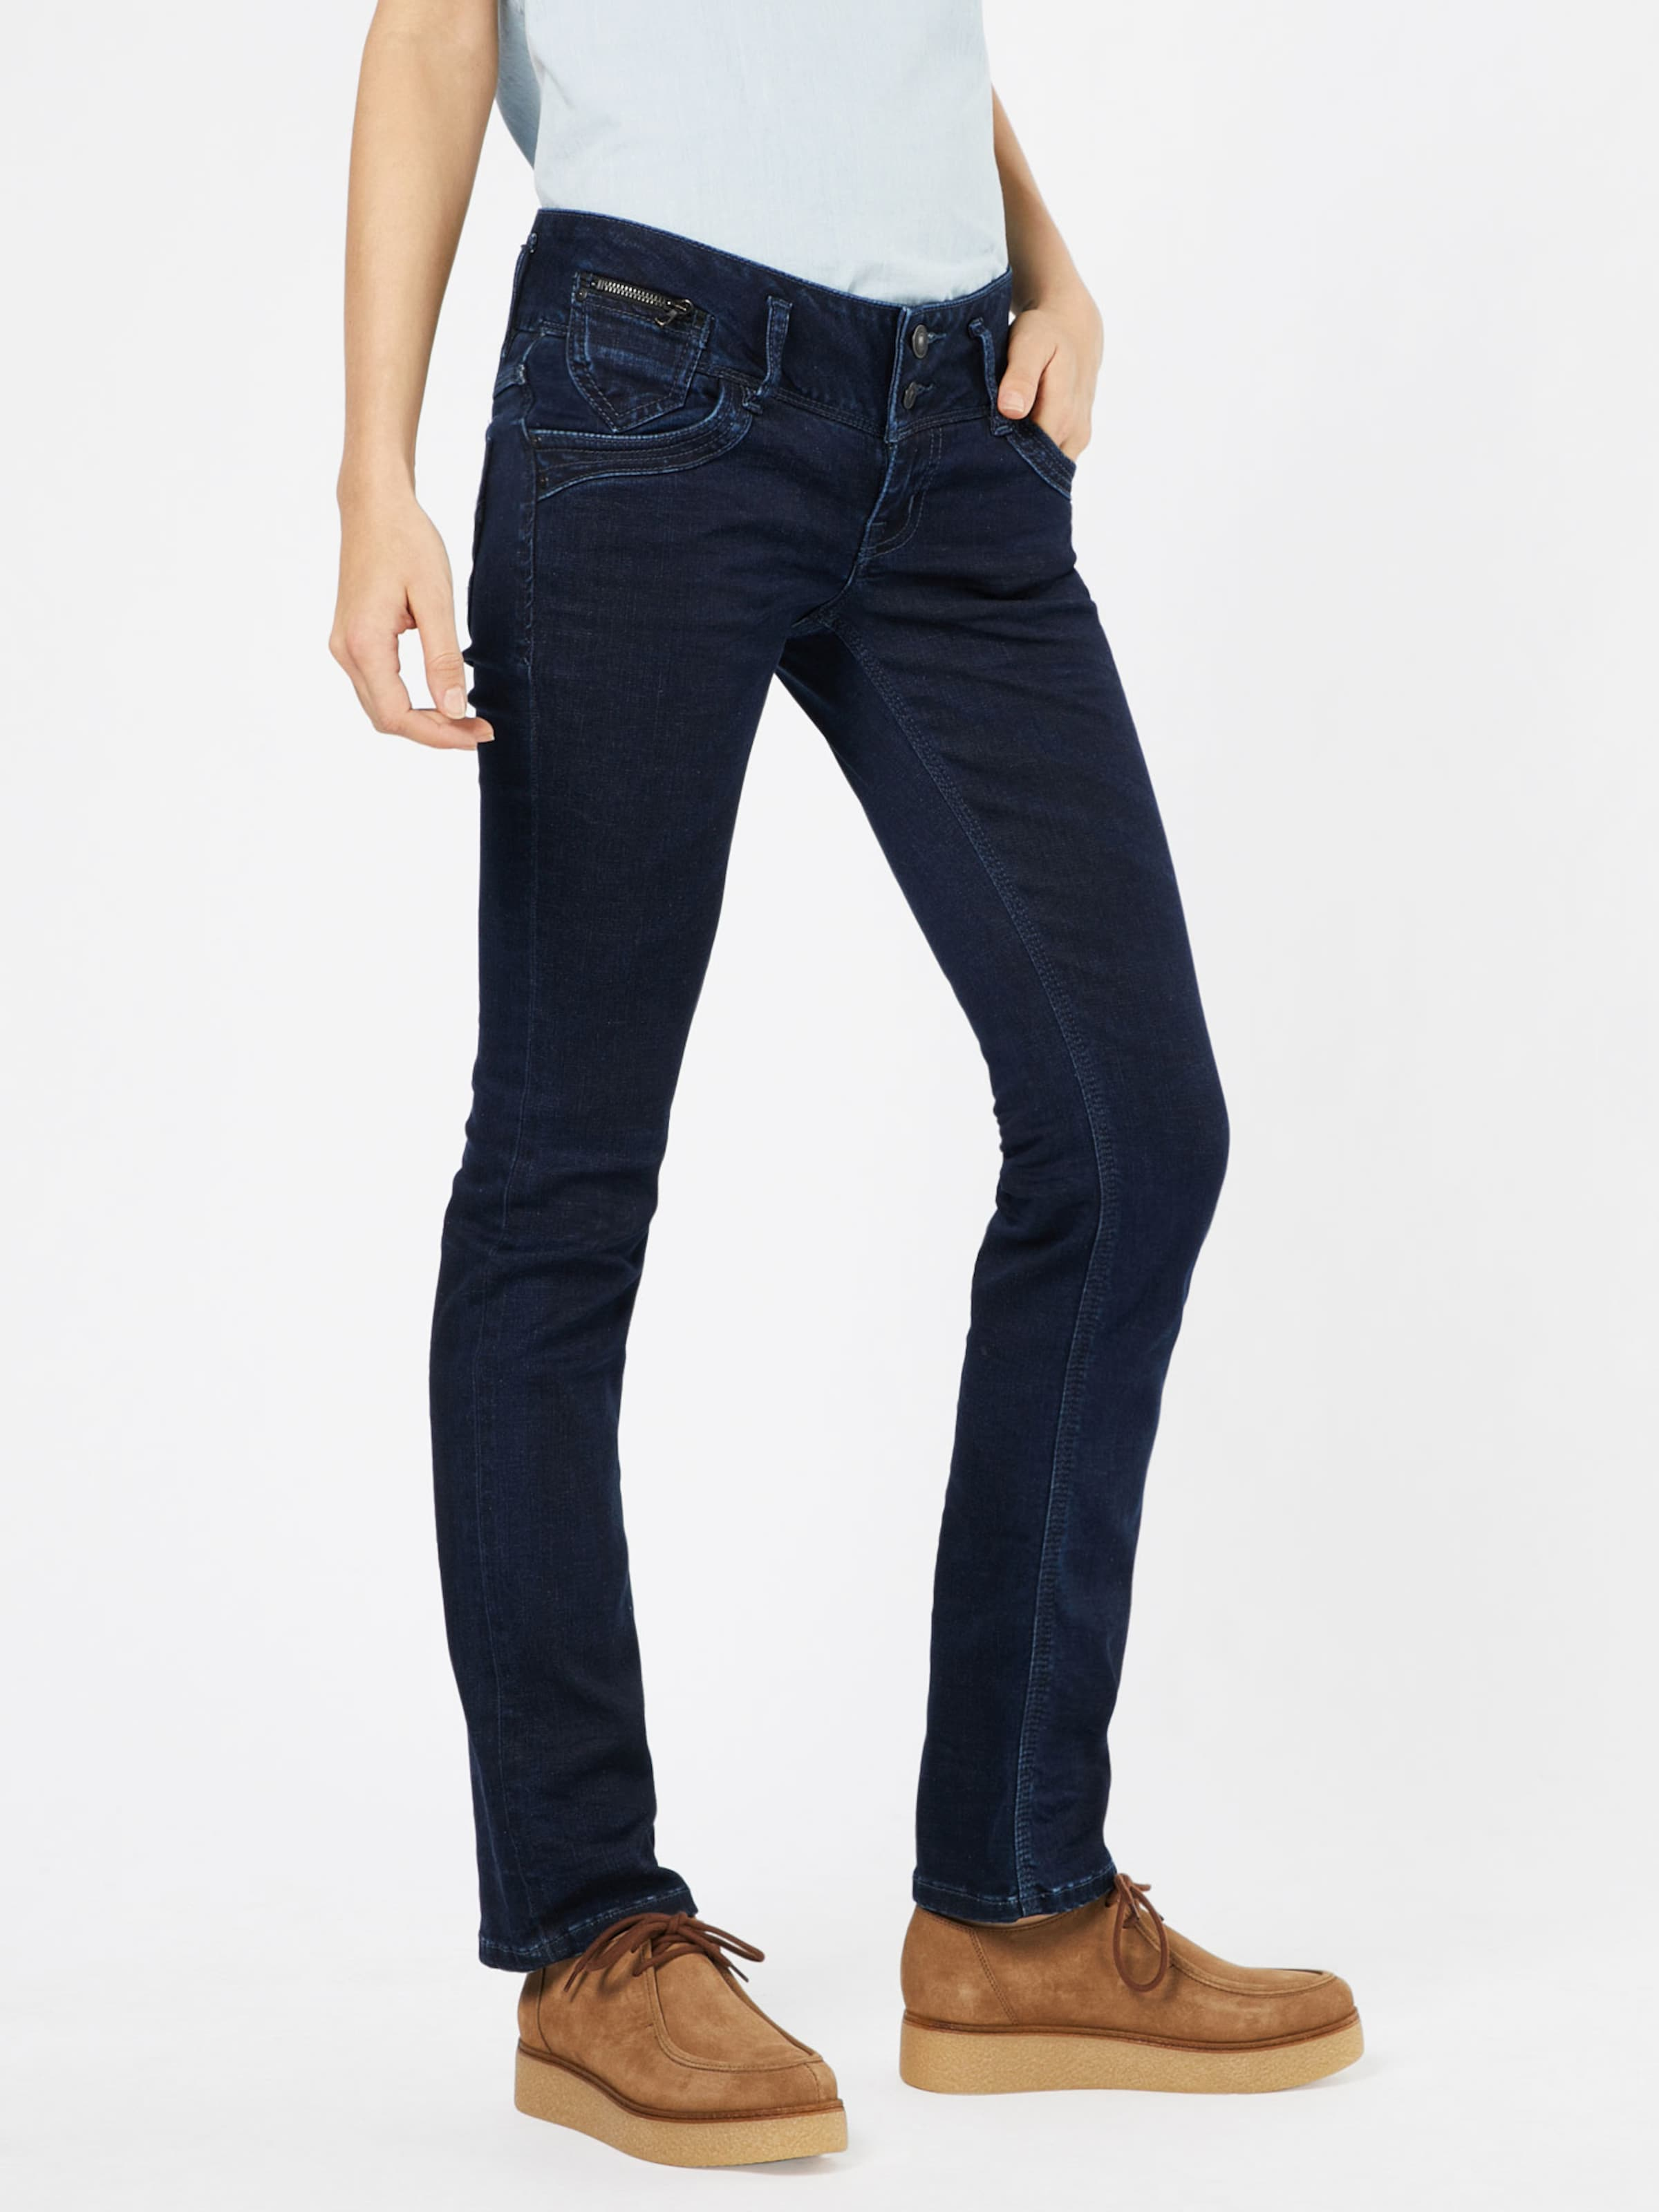 Look Blue Used Im Ltb 'jonquil' Jeans Denim In PwOXnkN80